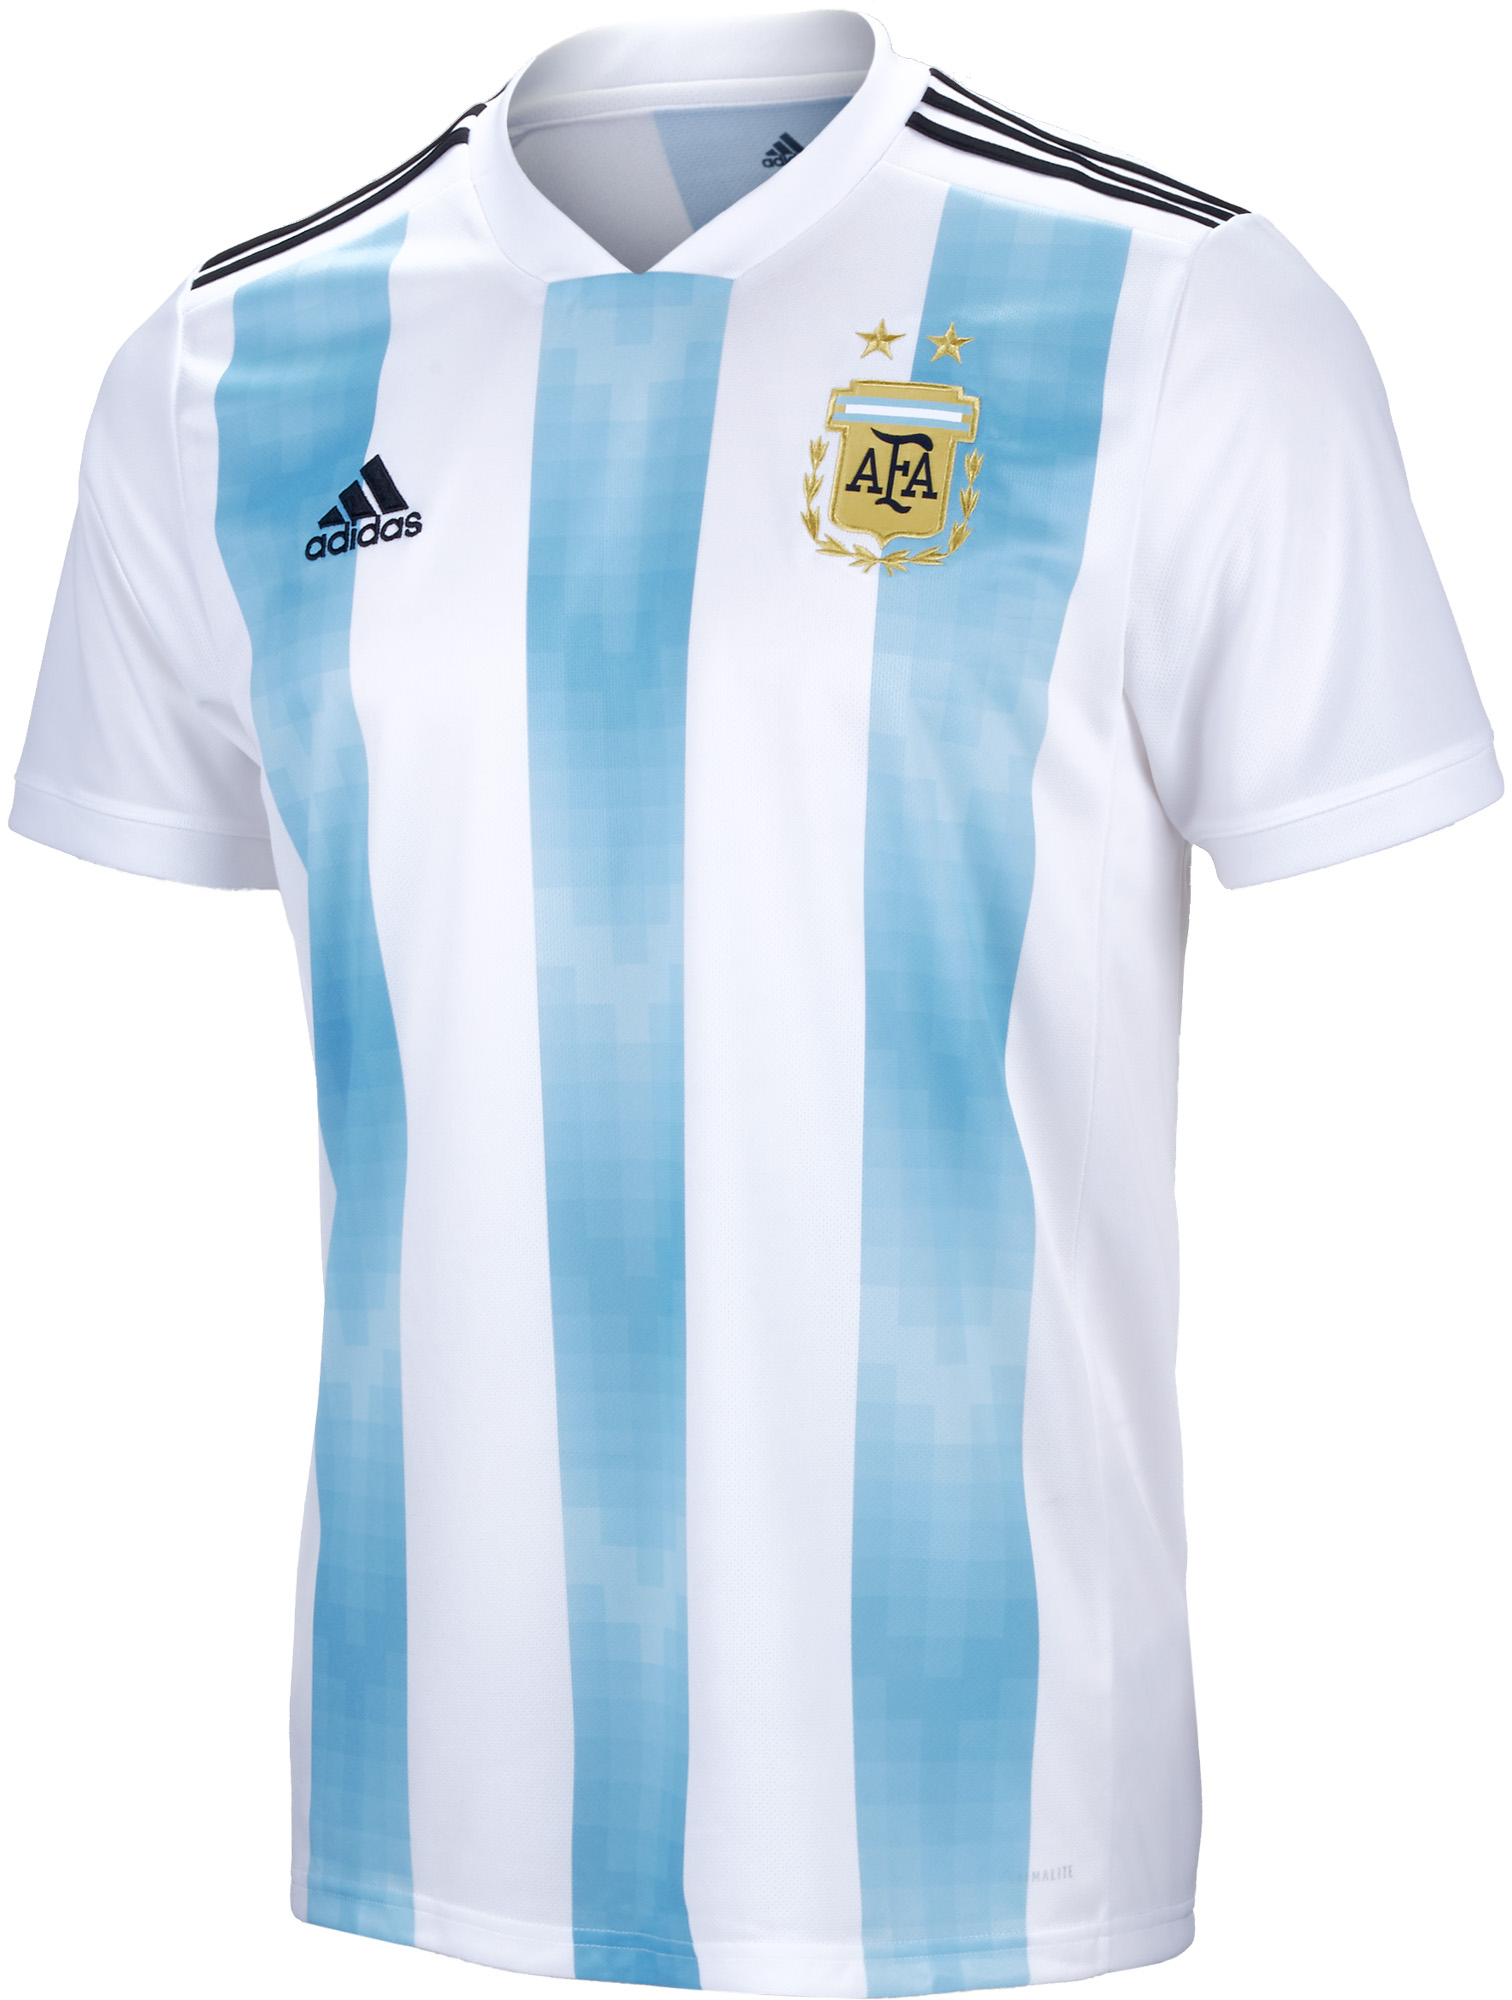 uk availability cf68e 7ab52 adidas Kids Argentina Home Jersey 2018-19